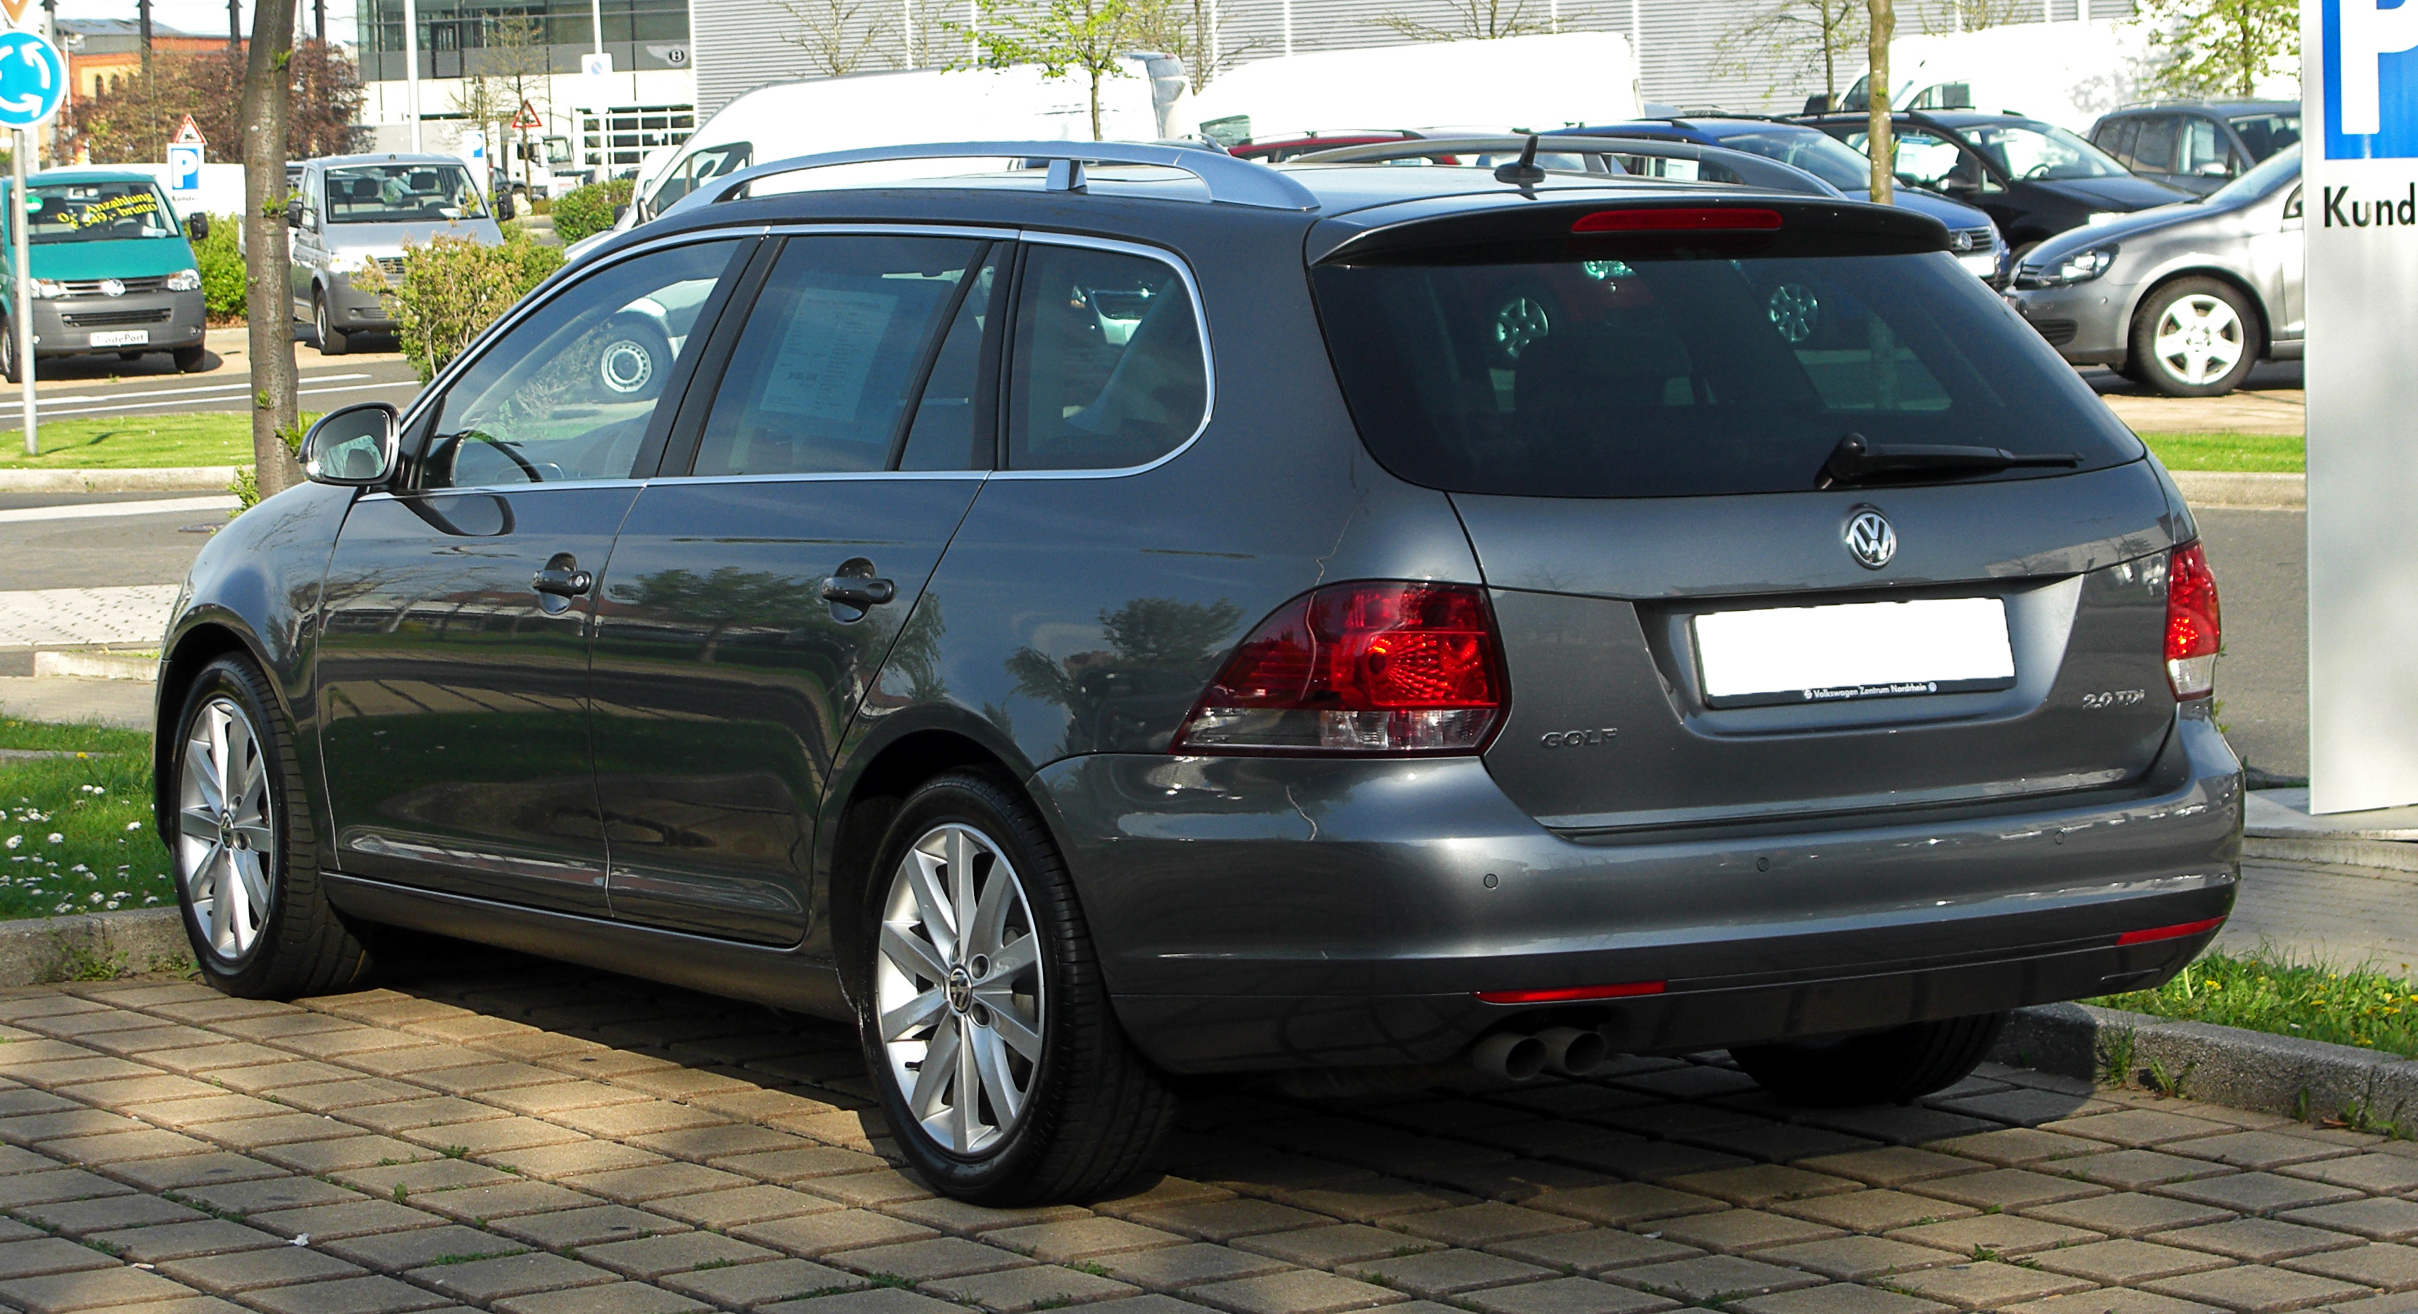 plik vw golf variant 2 0 tdi highline vi heckansicht 9 april 2011 d. Black Bedroom Furniture Sets. Home Design Ideas